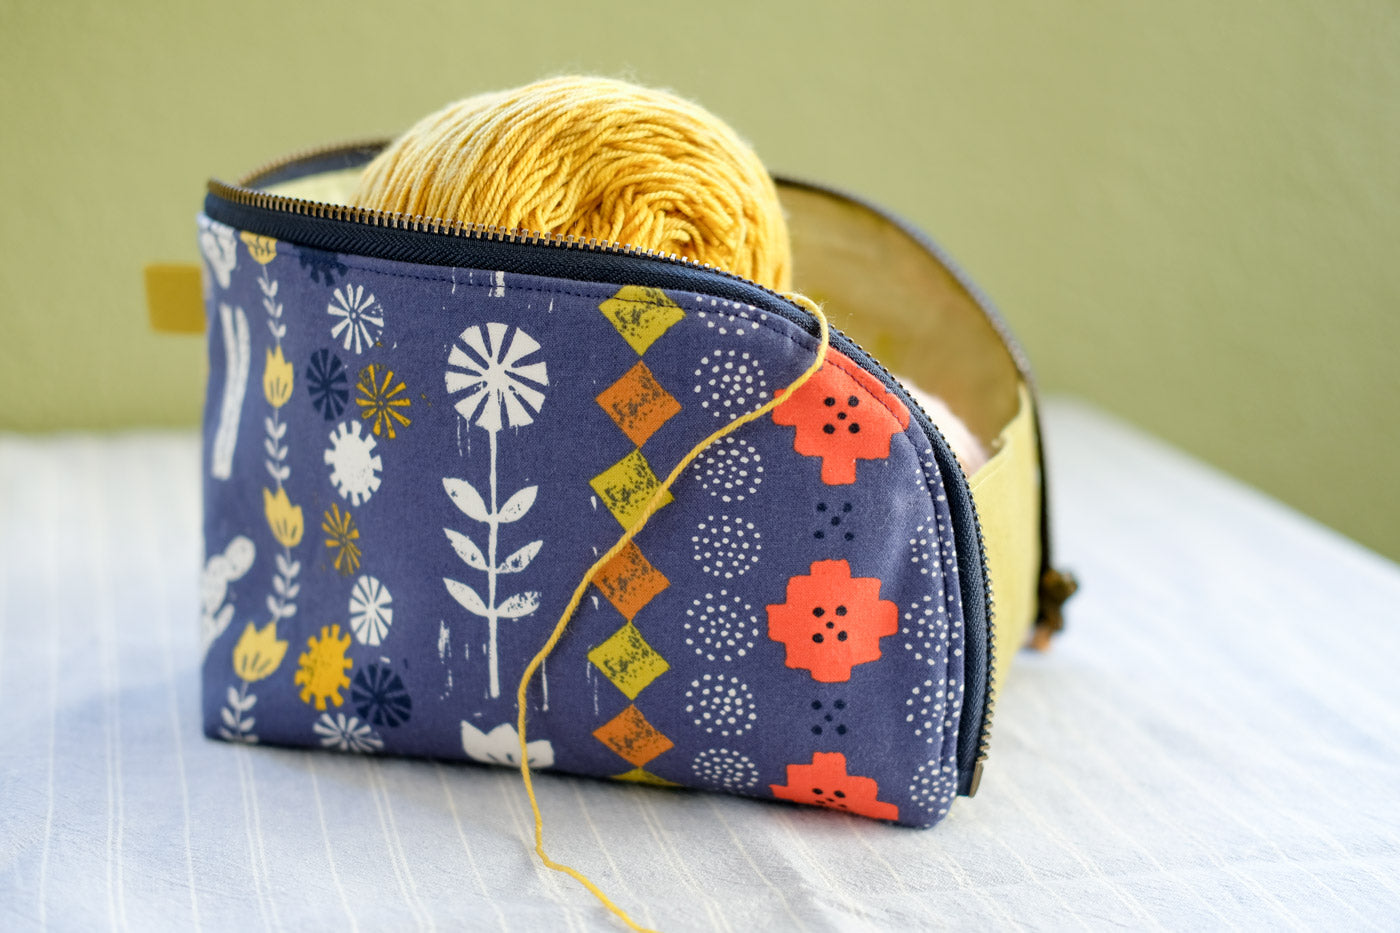 Caitlin's Open-Out Box Pouch by Aneela Hoey filled with yarn